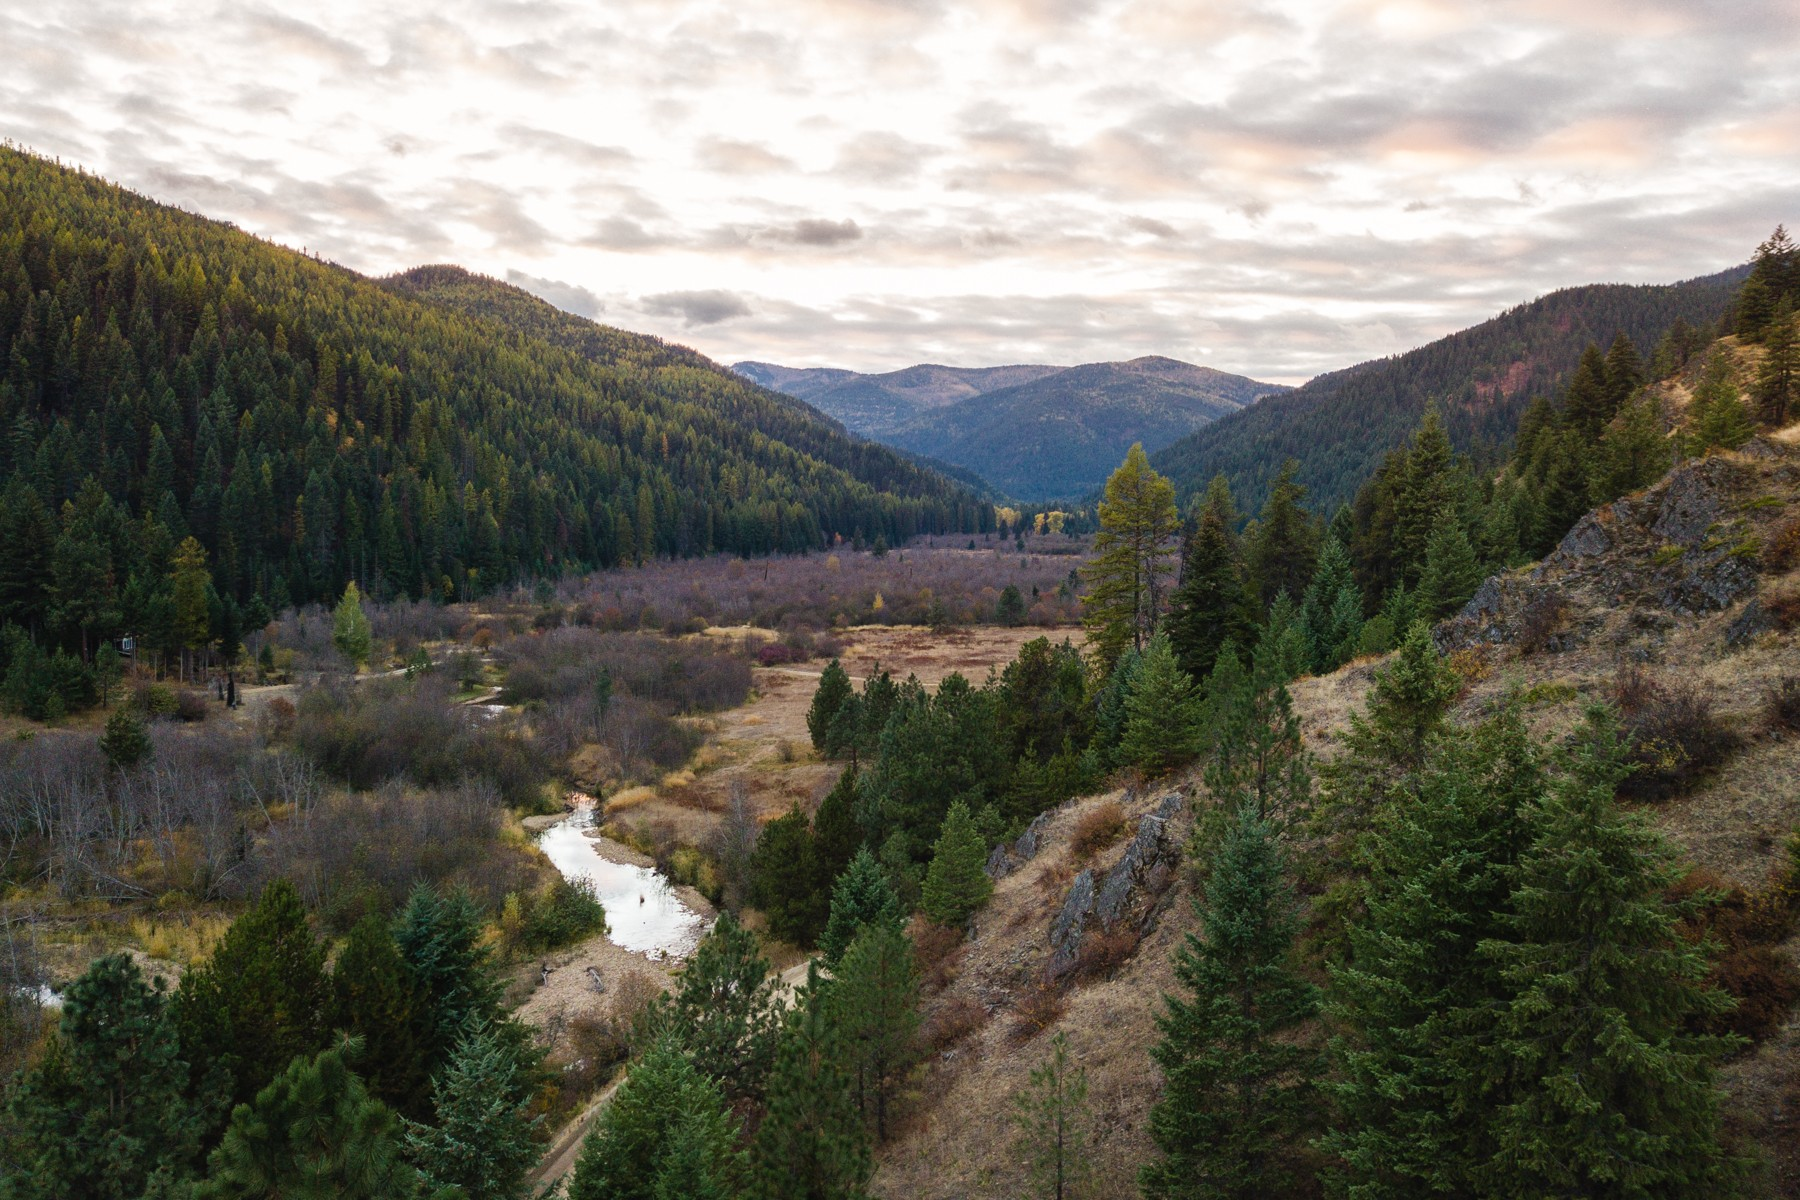 Land for Sale at Lot 11 Whitepine Creek Road Trout Creek, Montana 59874 United States